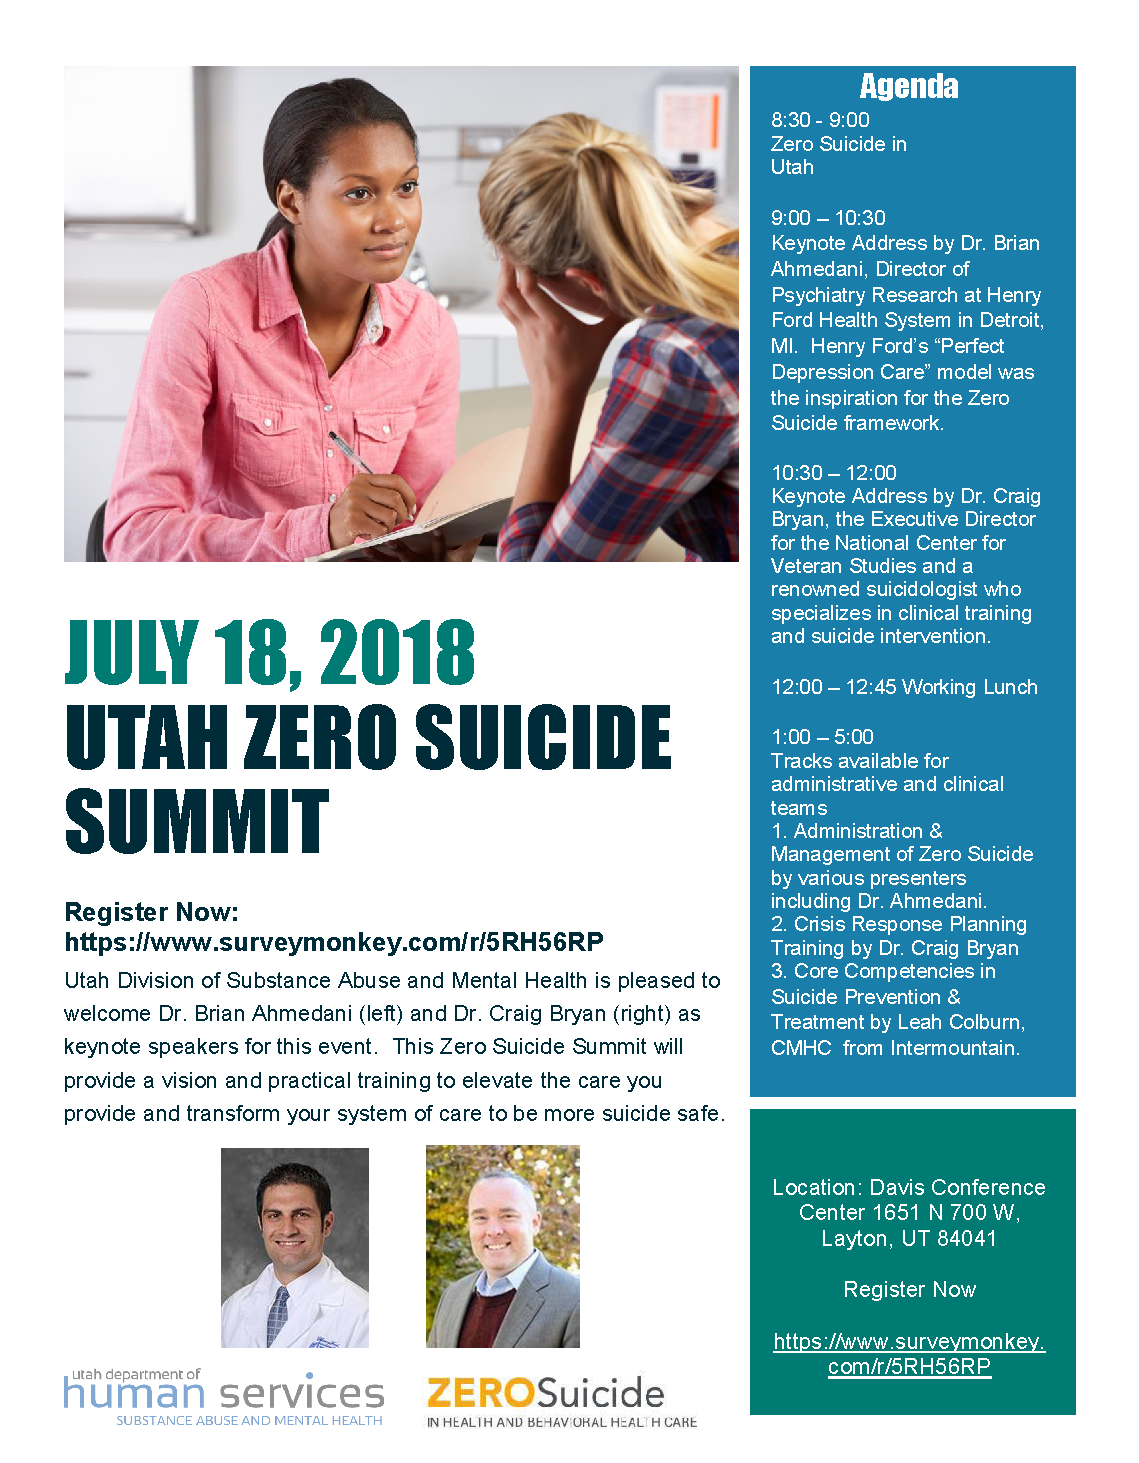 Zero Suicide 2018 Summit Official Flyer.docx